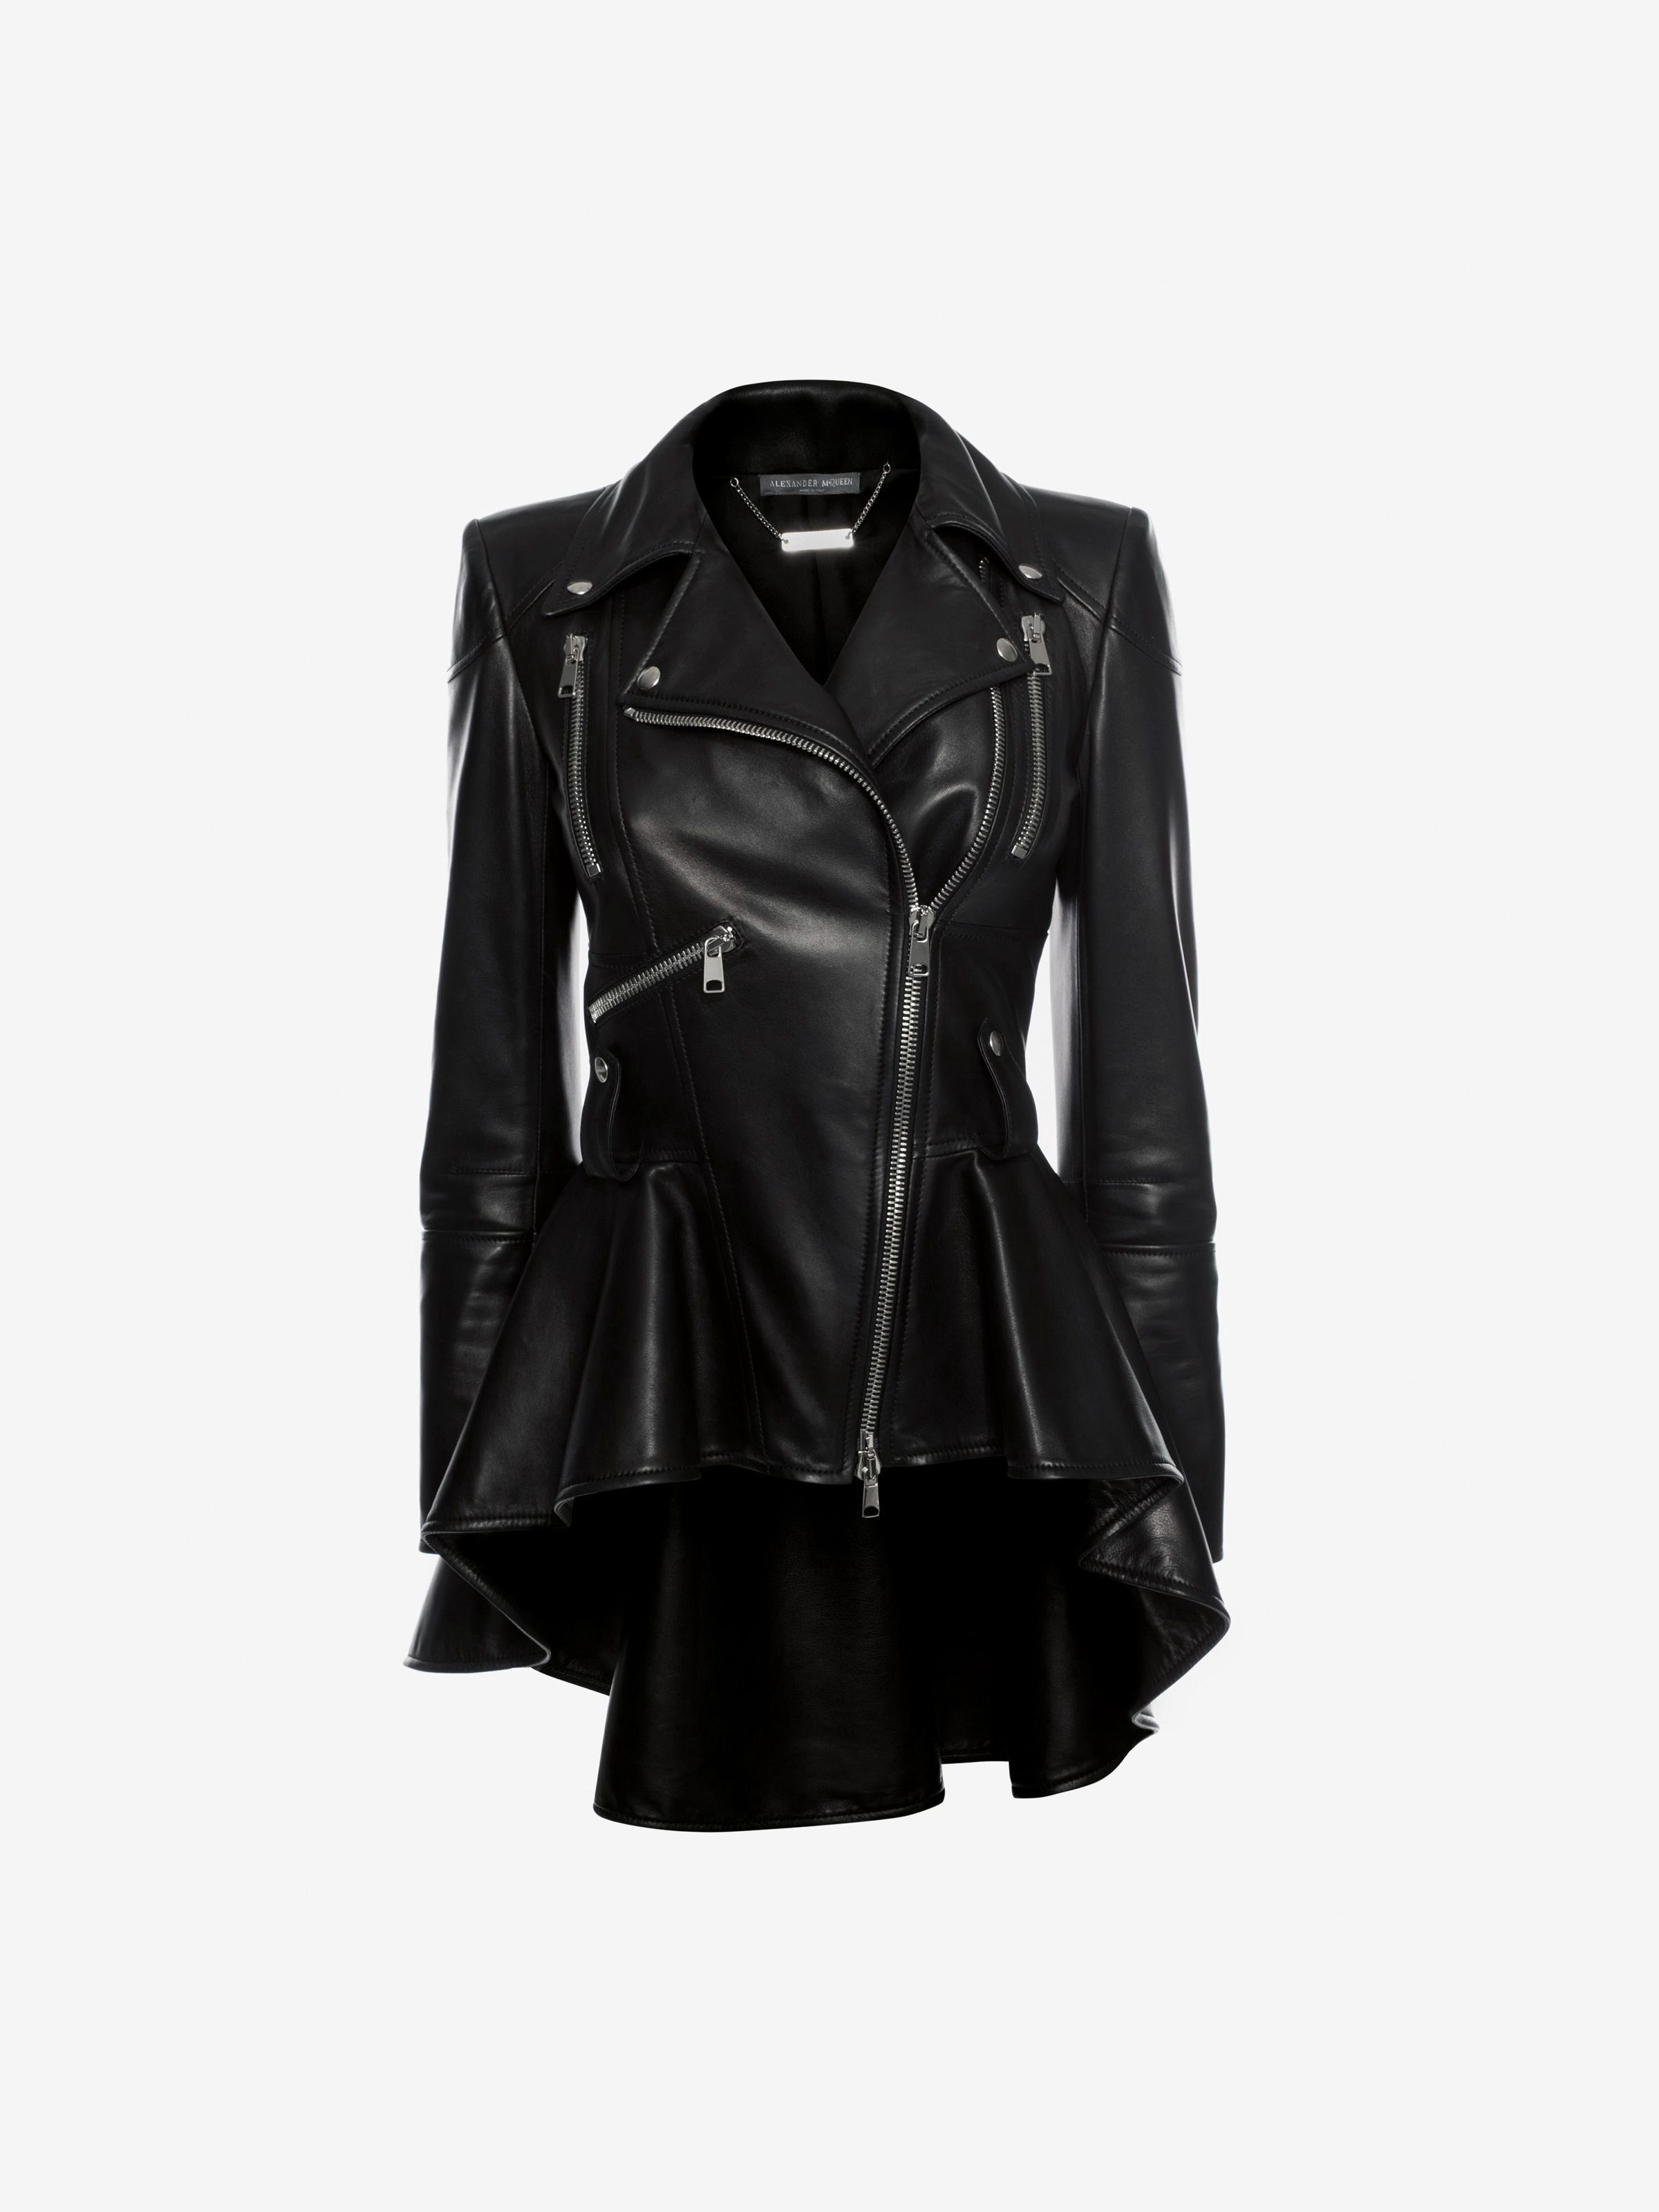 Leather Biker Jacket by Alexander McQueen   Products   Pinterest ... a2f6bf9c14f